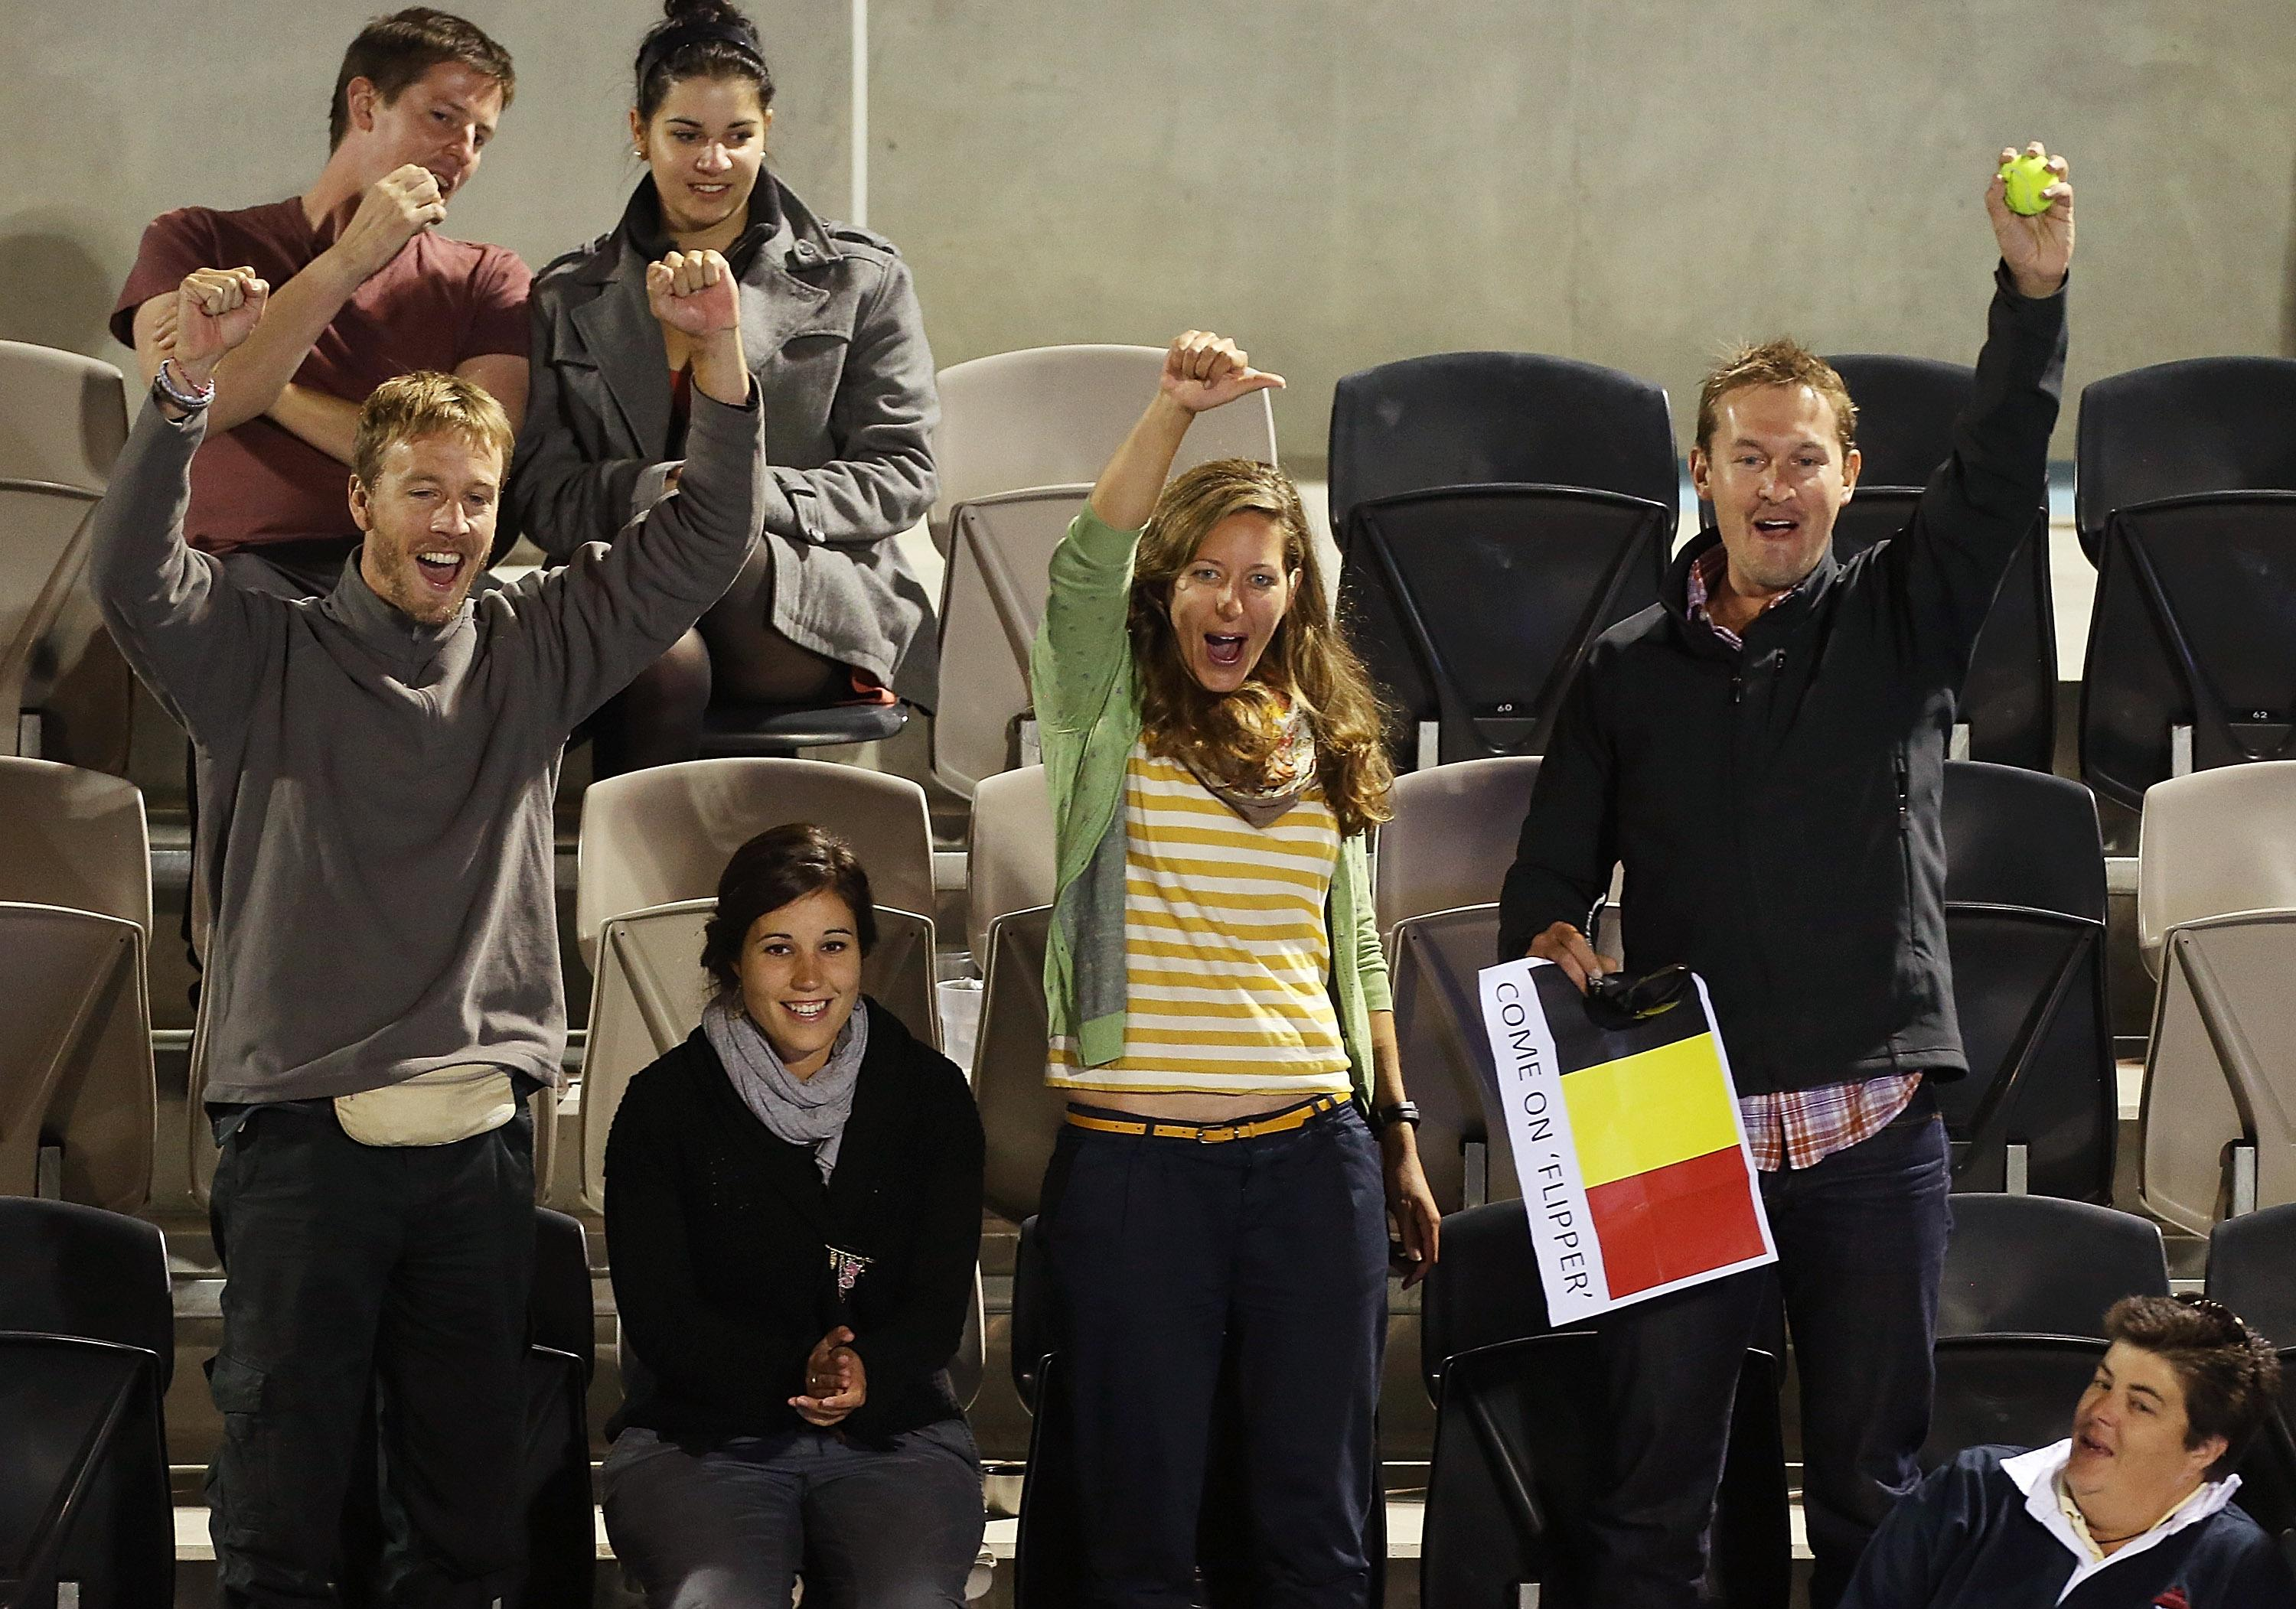 Fans with a Belgium flag cheer at a tennis match